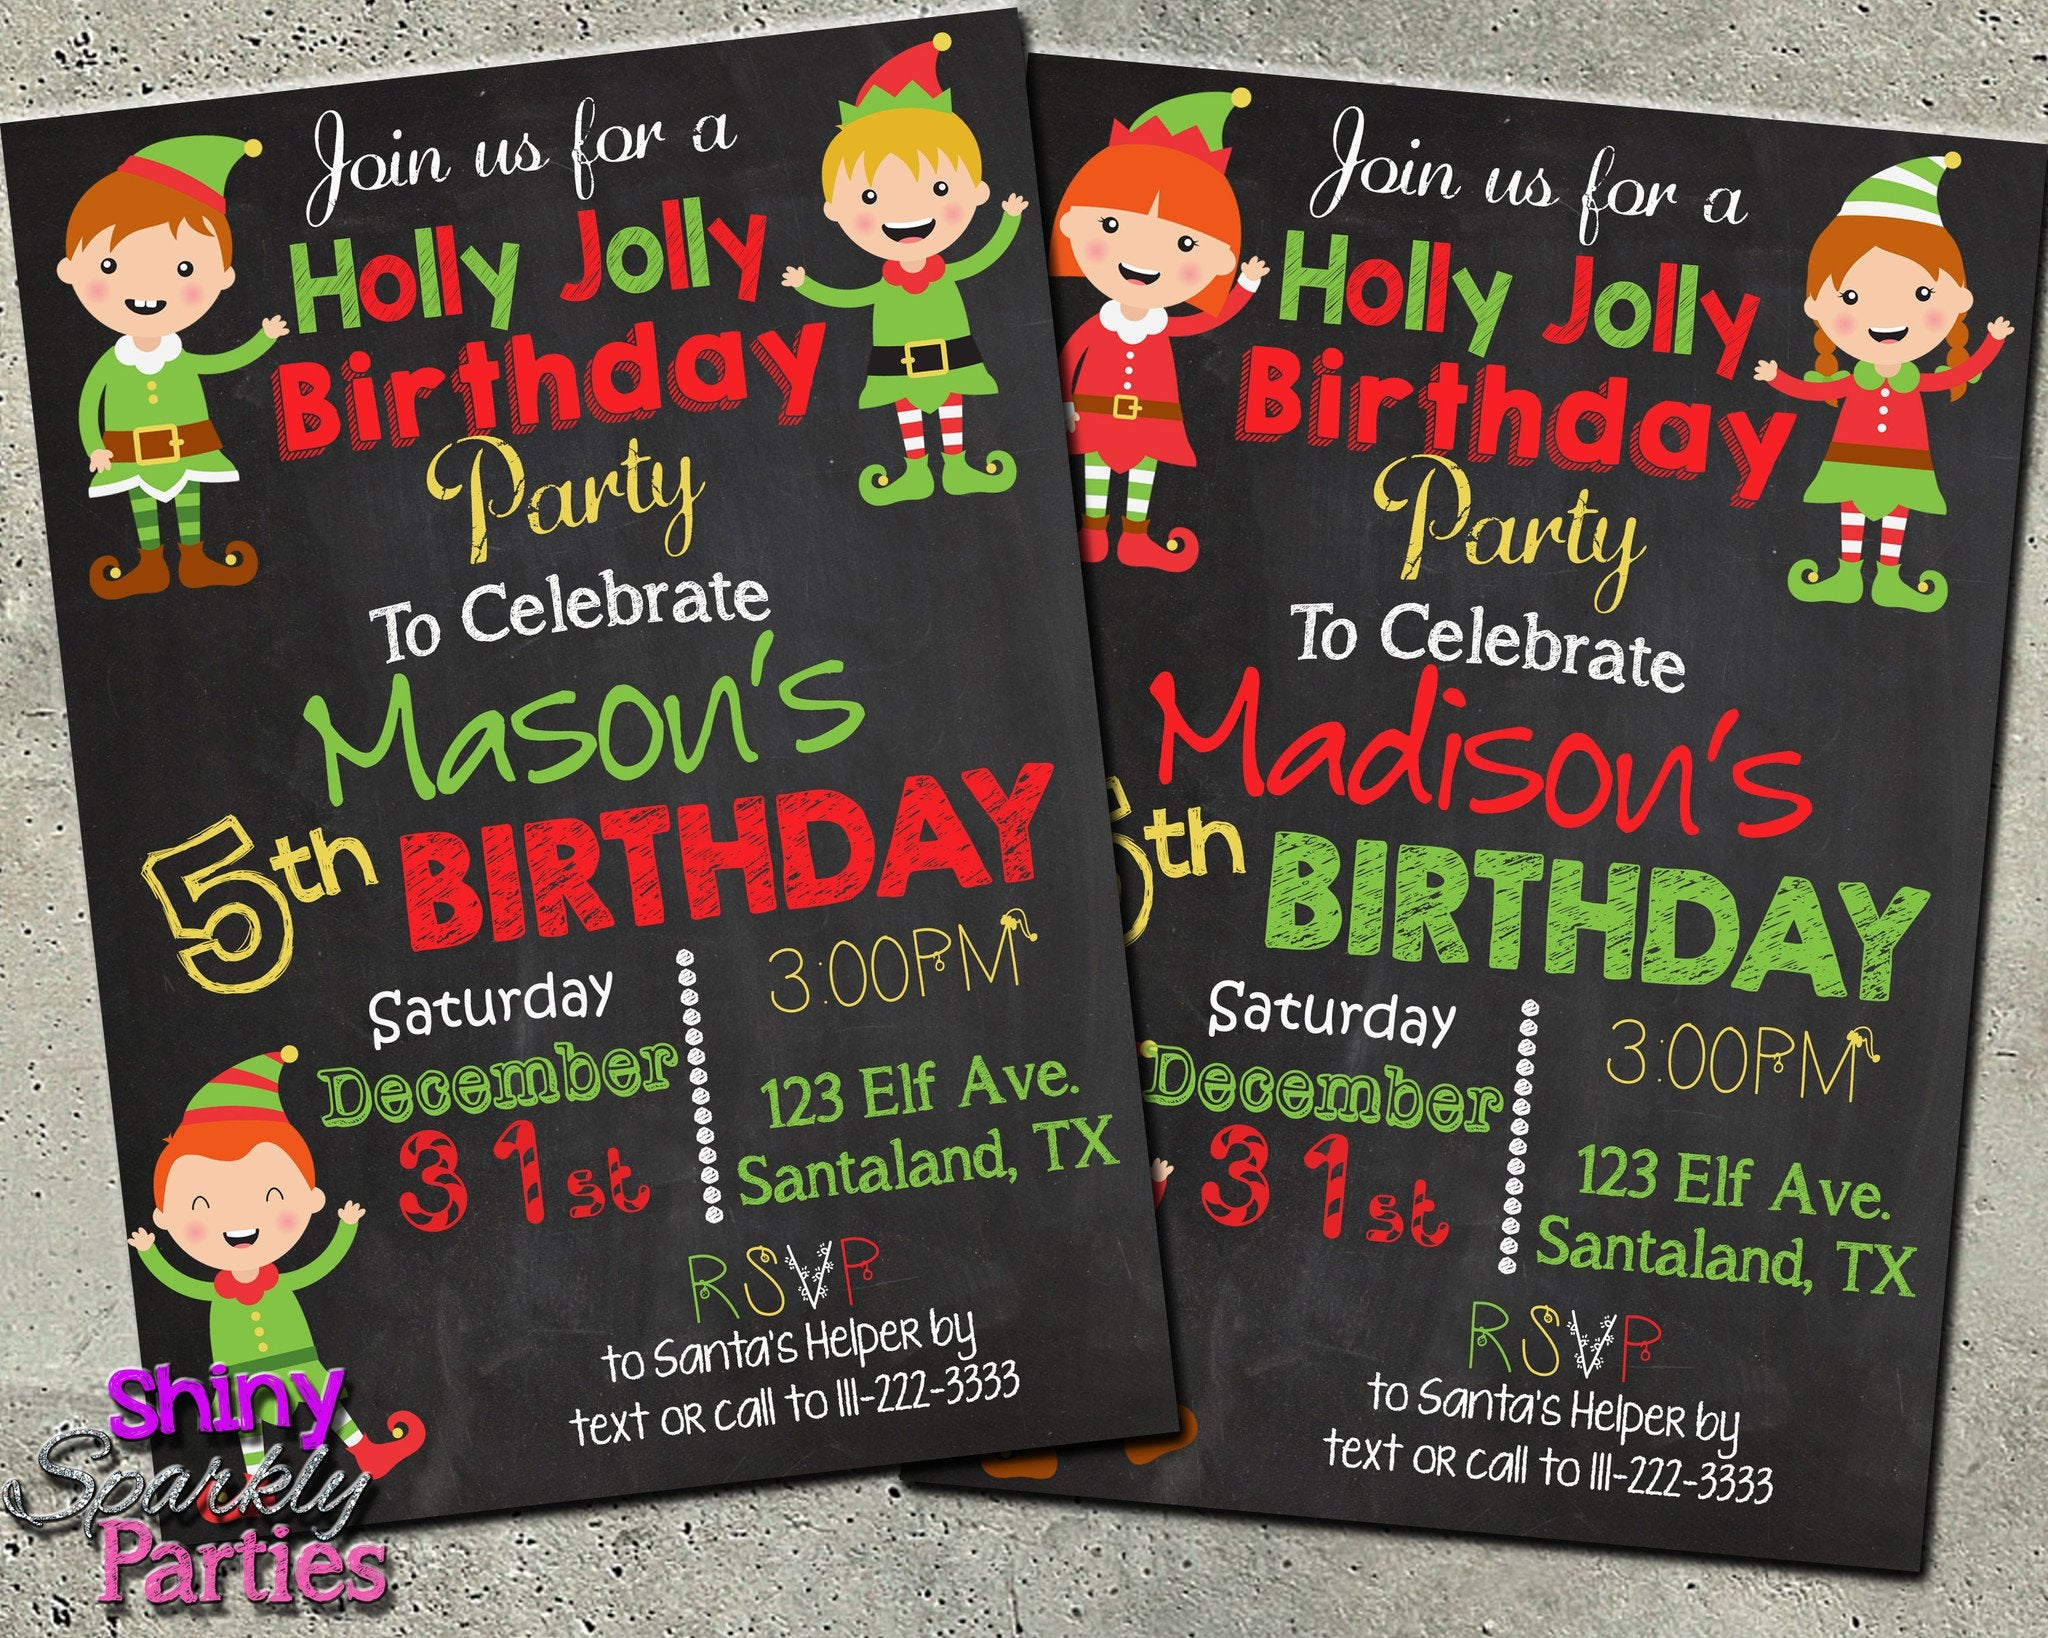 Christmas Birthday Party Invitations.Elf Birthday Invitation Christmas Birthday Invitation